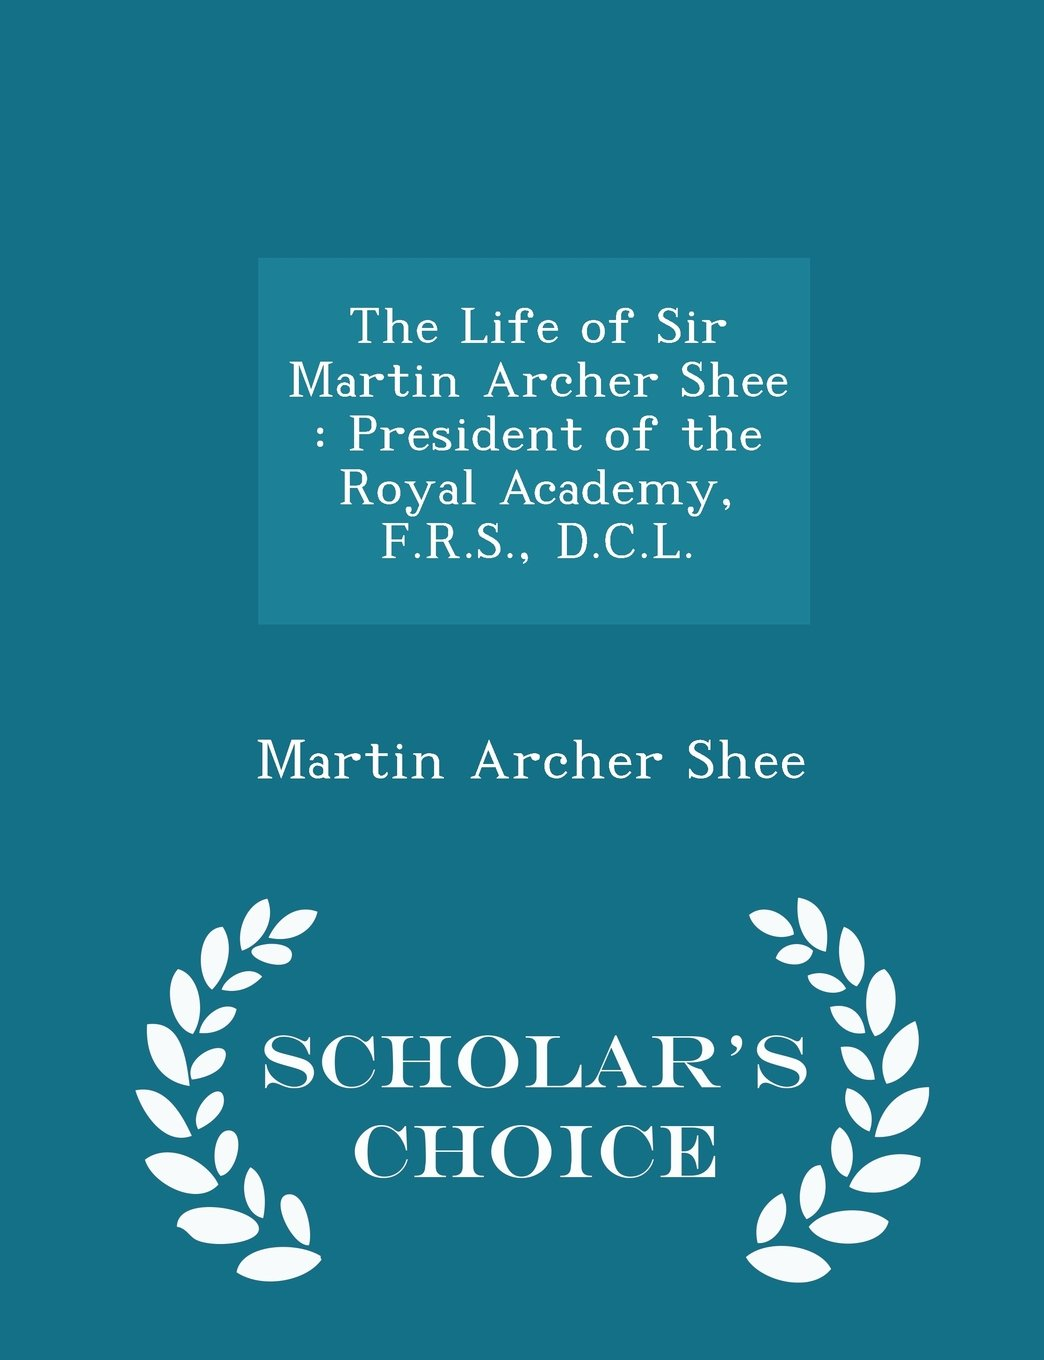 Download The Life of Sir Martin Archer Shee: President of the Royal Academy, F.R.S., D.C.L. - Scholar's Choice Edition ebook